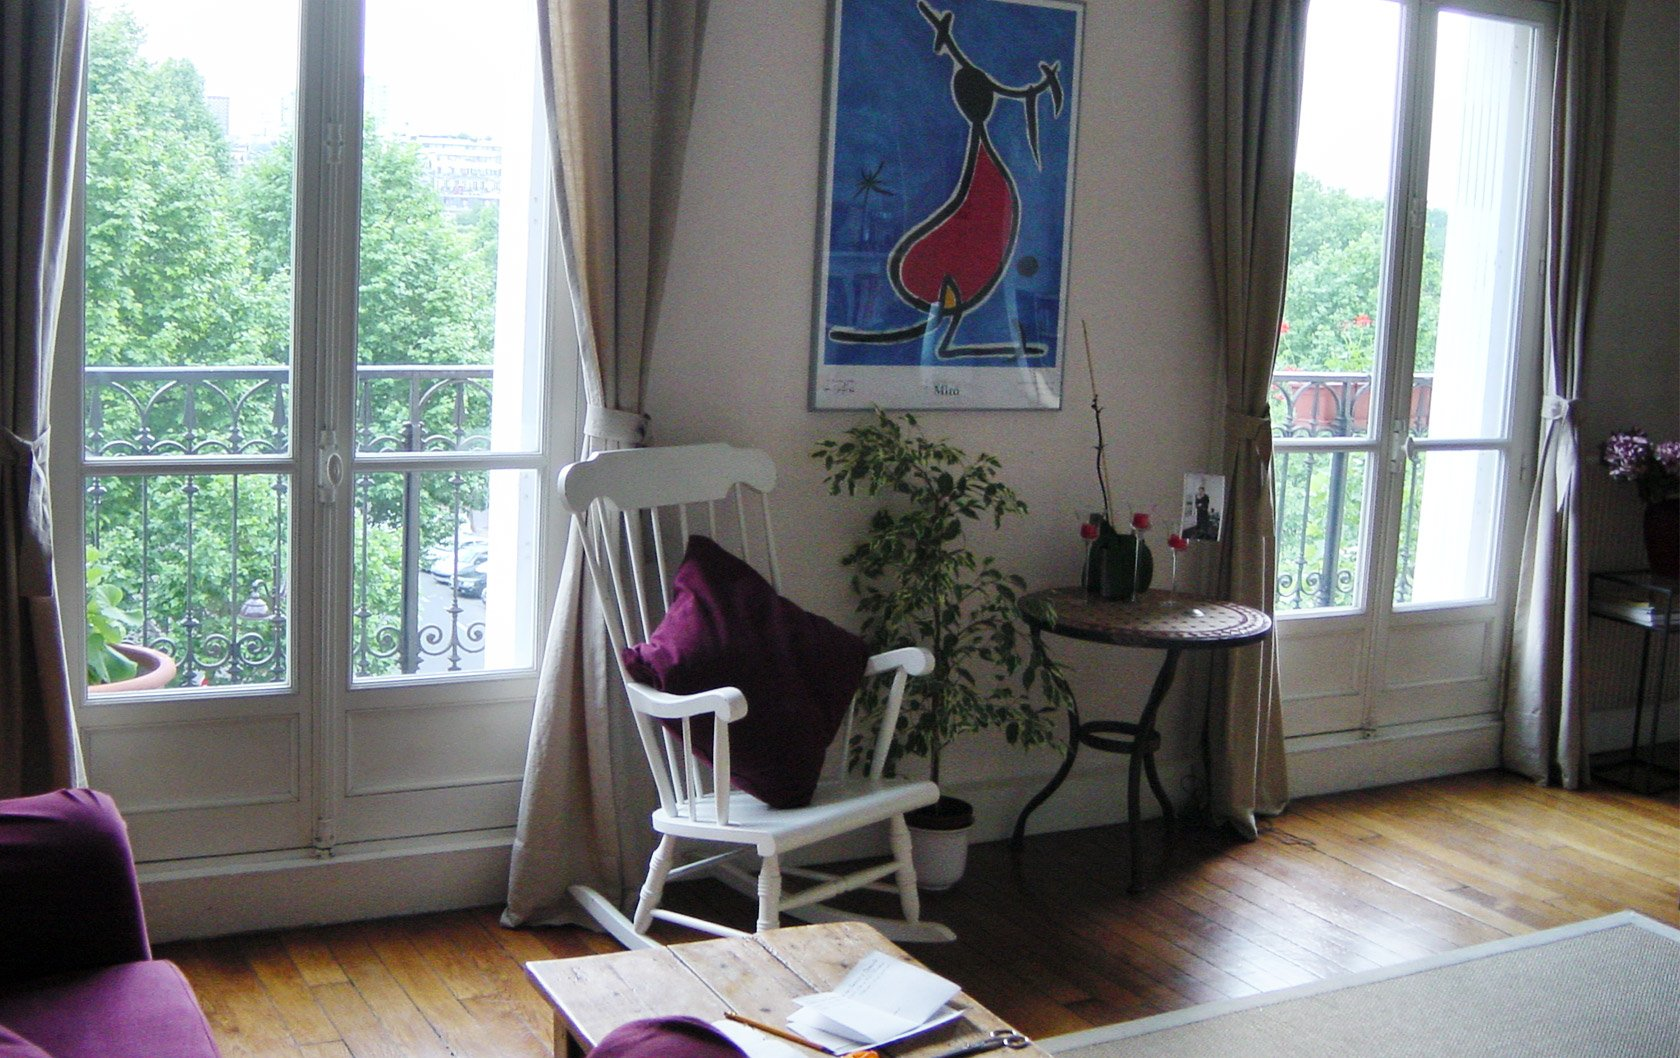 merlot-original-living-room-window